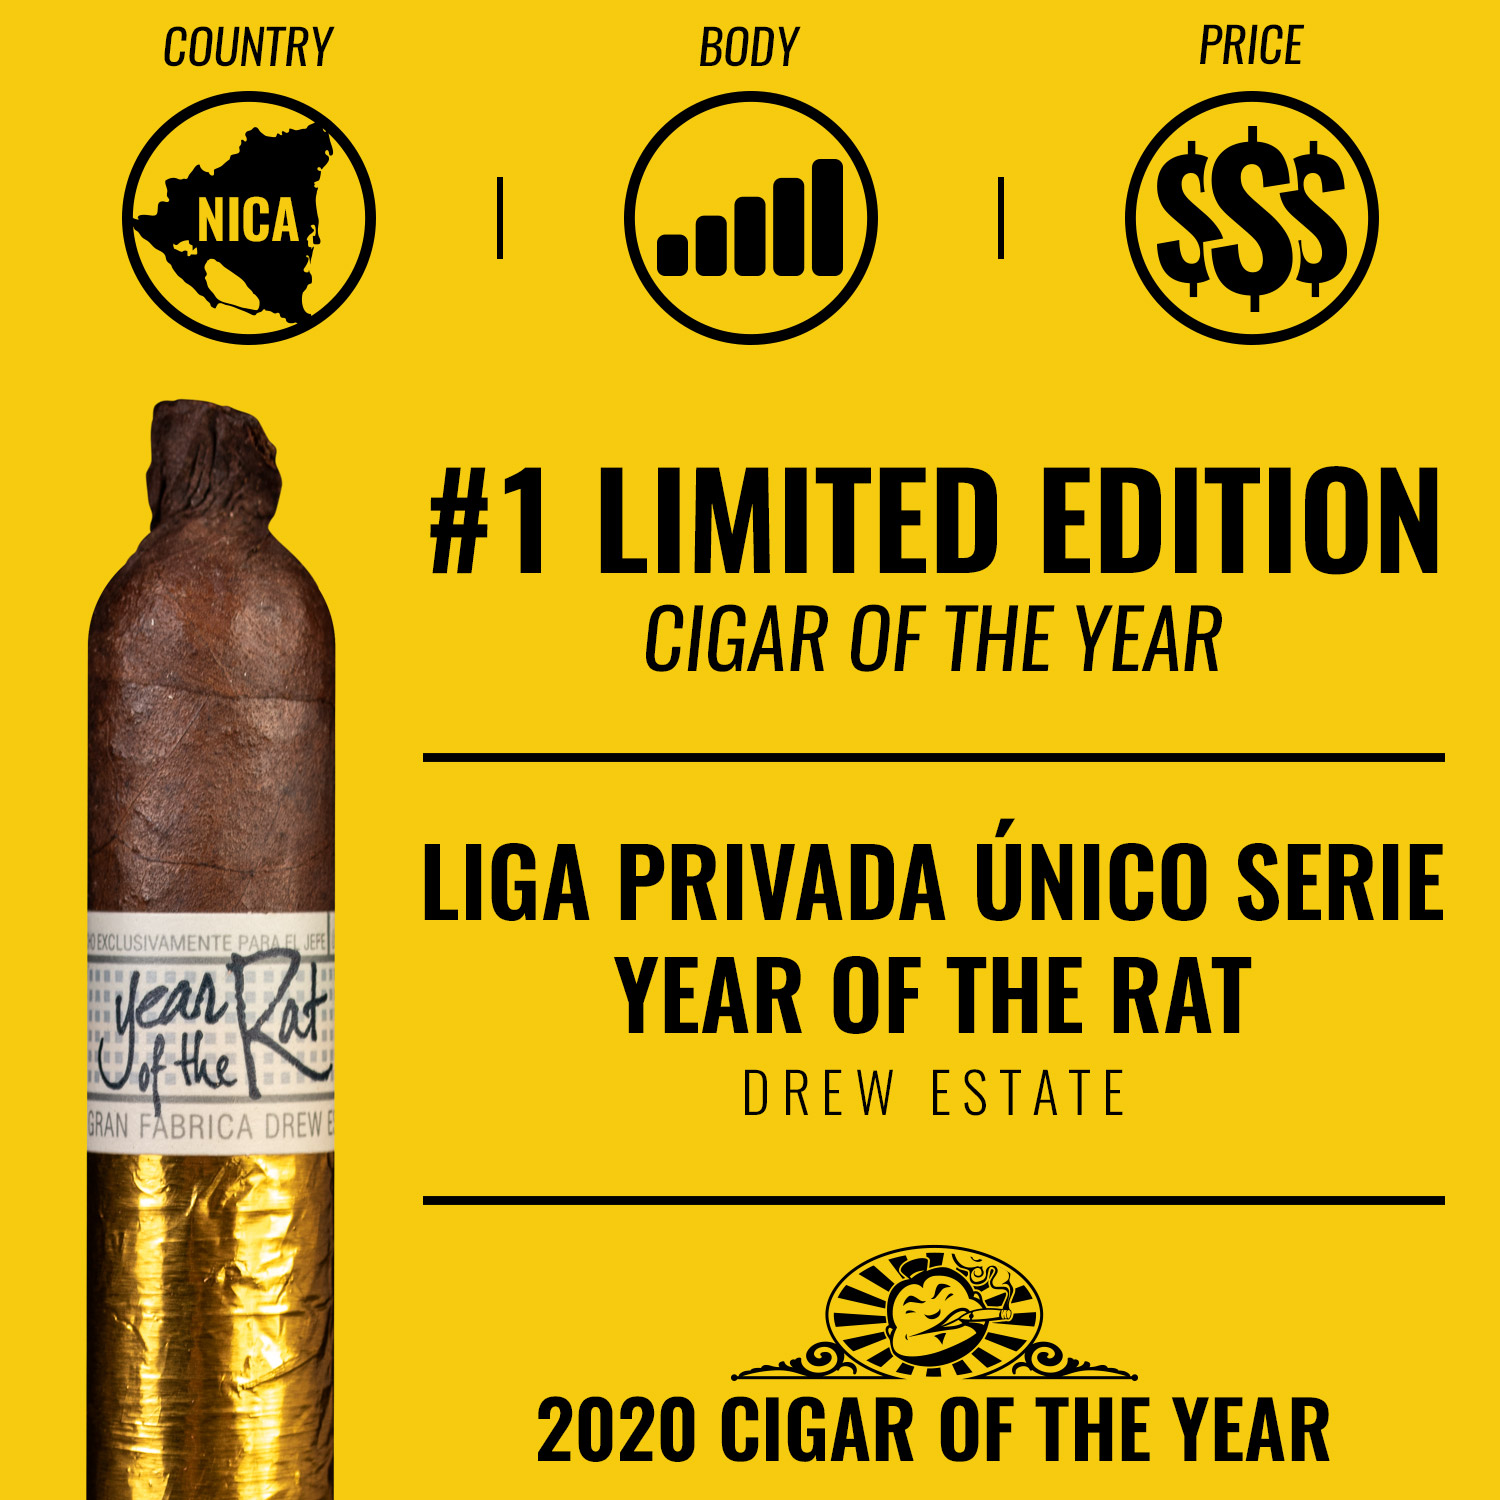 Liga Privada Único Serie Year of the Rat (2020) No. 1 Limited Edition Cigar of the Year 2020